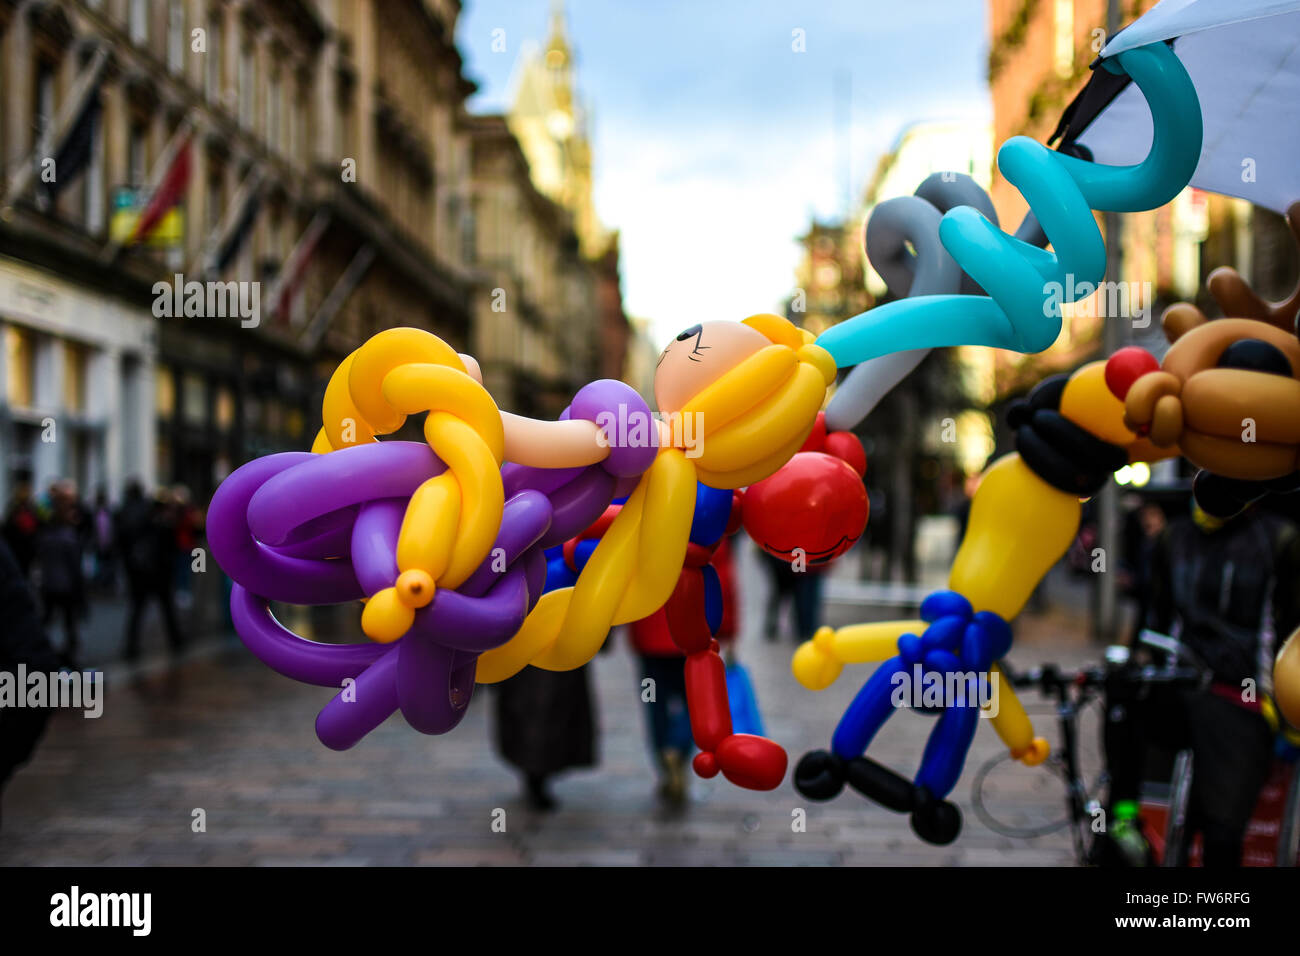 A Balloon Seller Stand in Glasgow City Centre - Stock Image